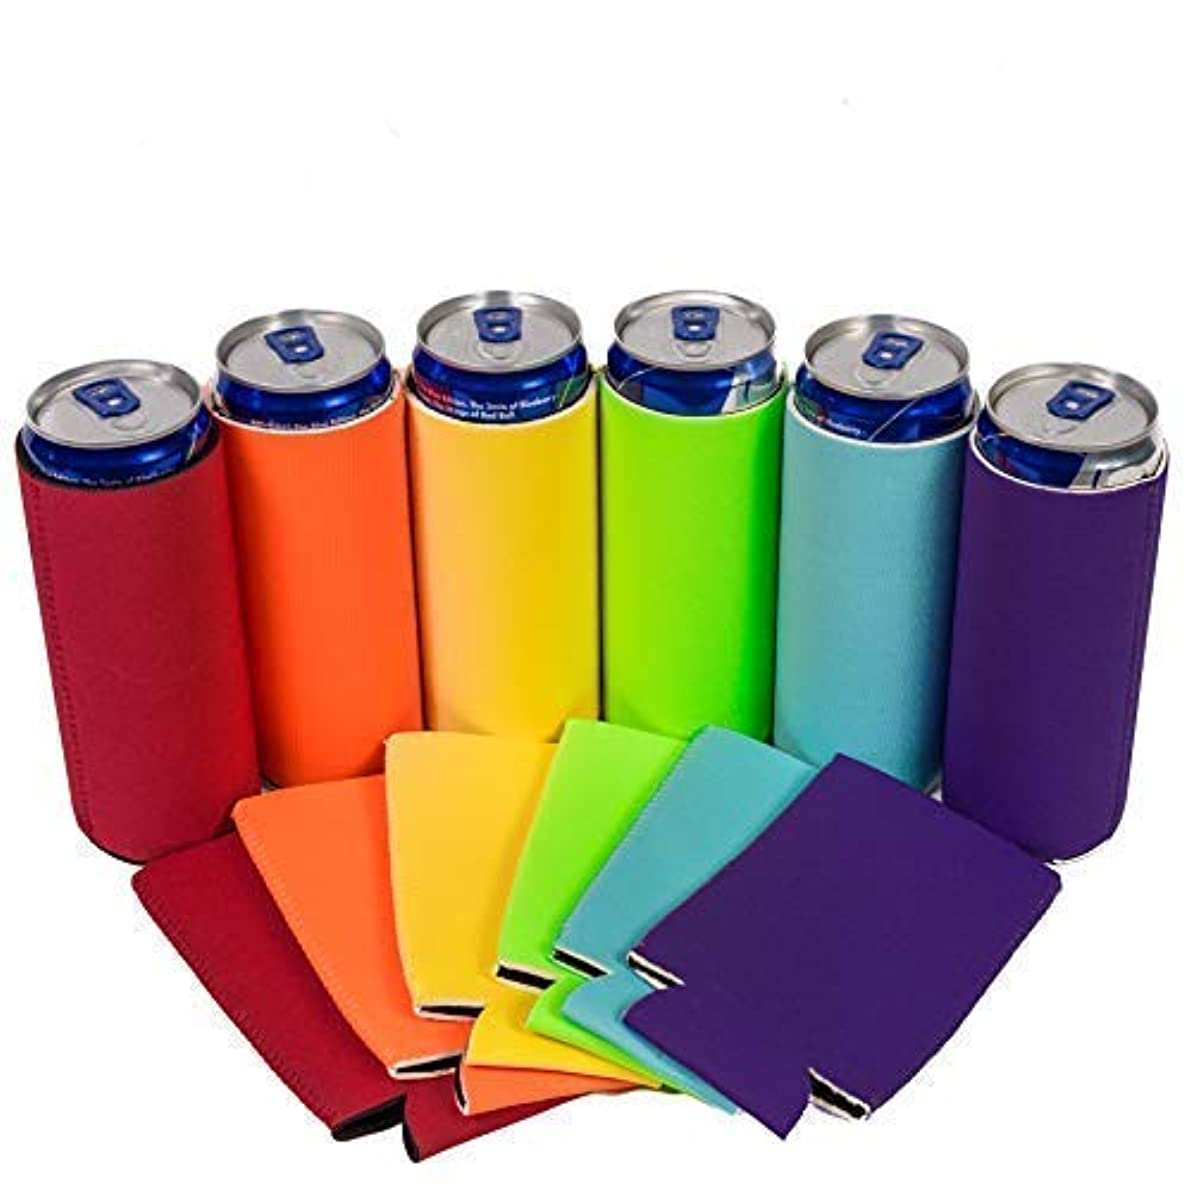 QualityPerfection - 6 Multi Color Slim Can Cooler Sleeves - Beer Blank Skinny 12 oz Neoprene Coolies - Perfect For 12 oz Slim Red Bull, Michelob Ultra, Spiked Seltzer,Truly - Great For Any Event